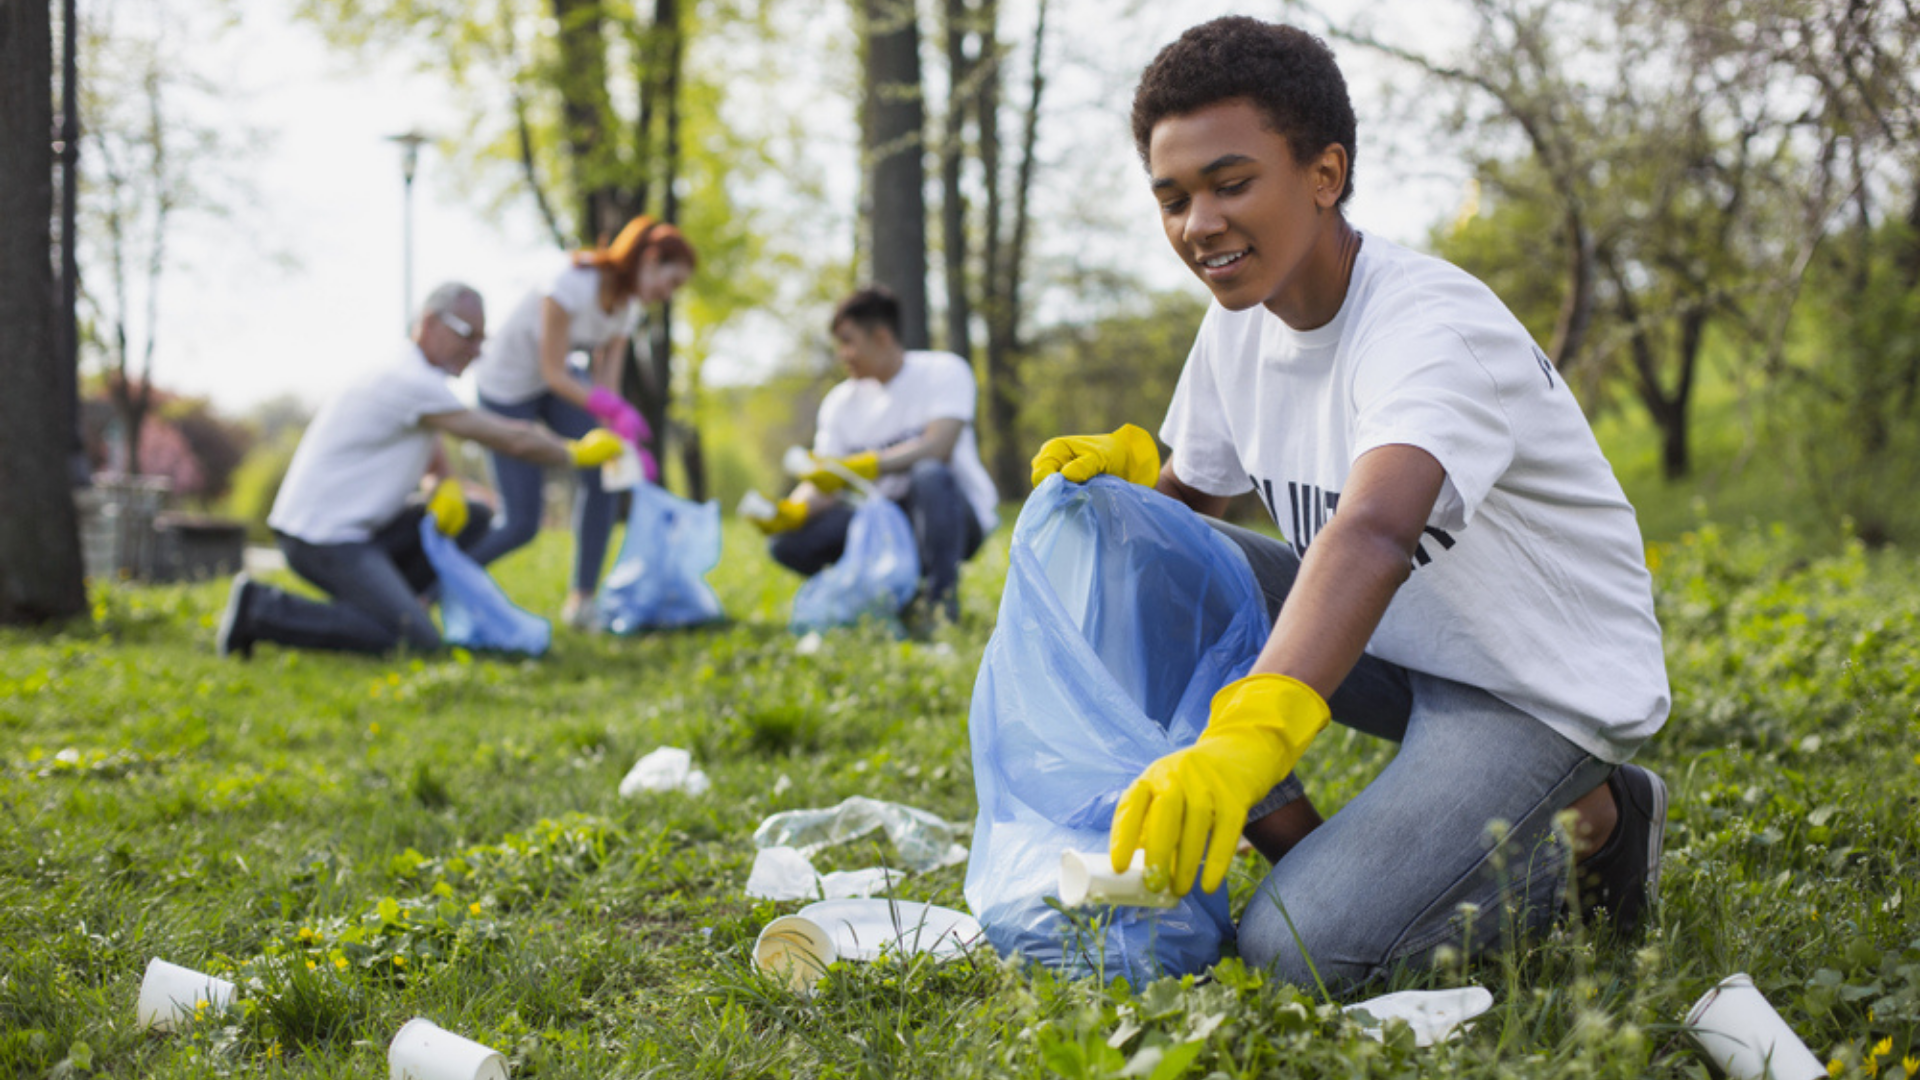 How to Engage and Recruit Volunteers in Your Community